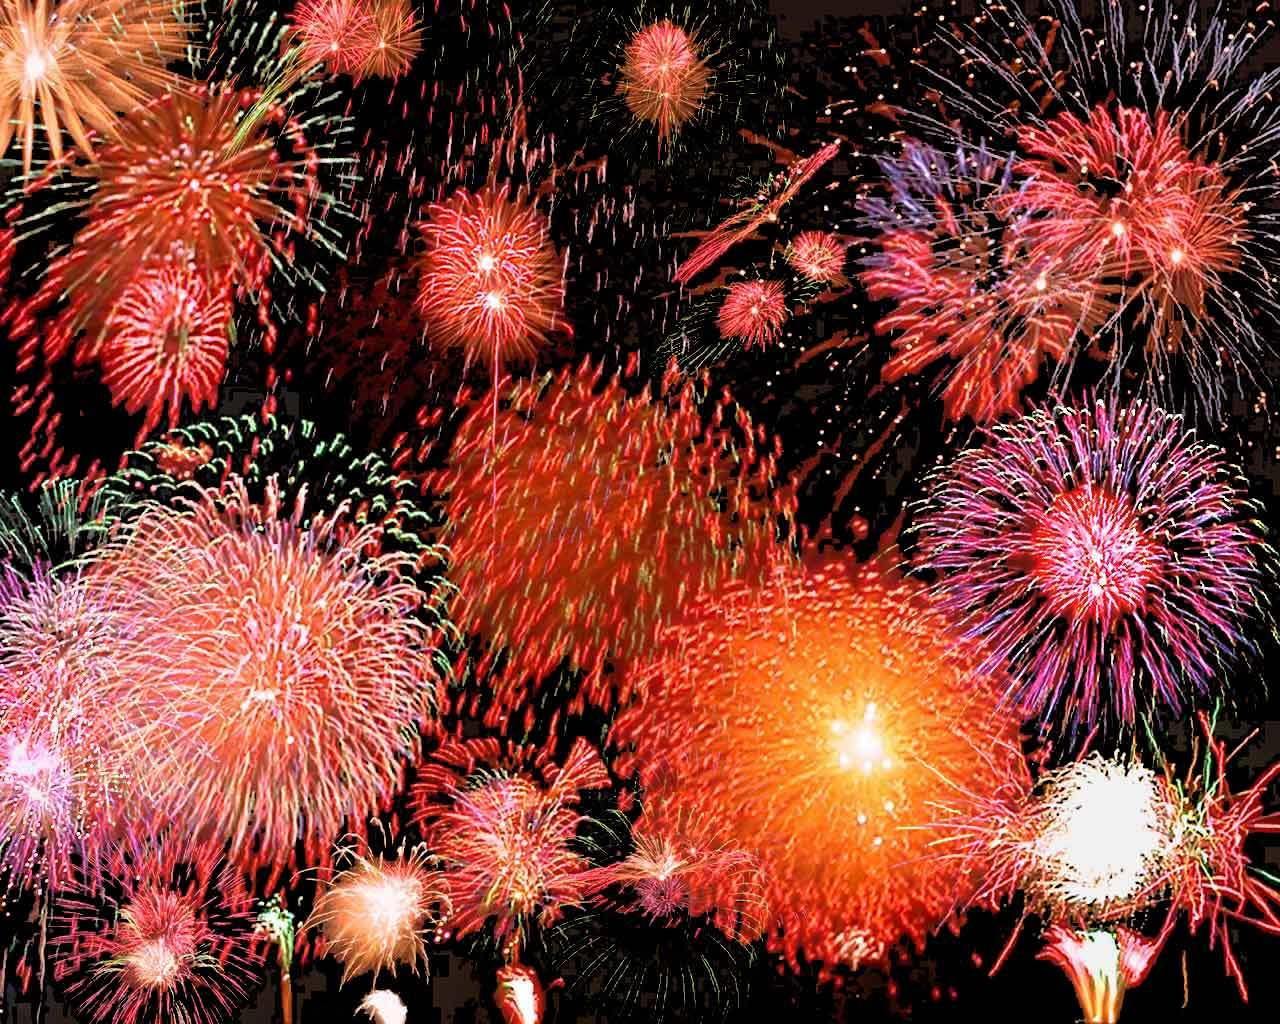 fireworks Animated Diwali Crackers Pictures.jpg